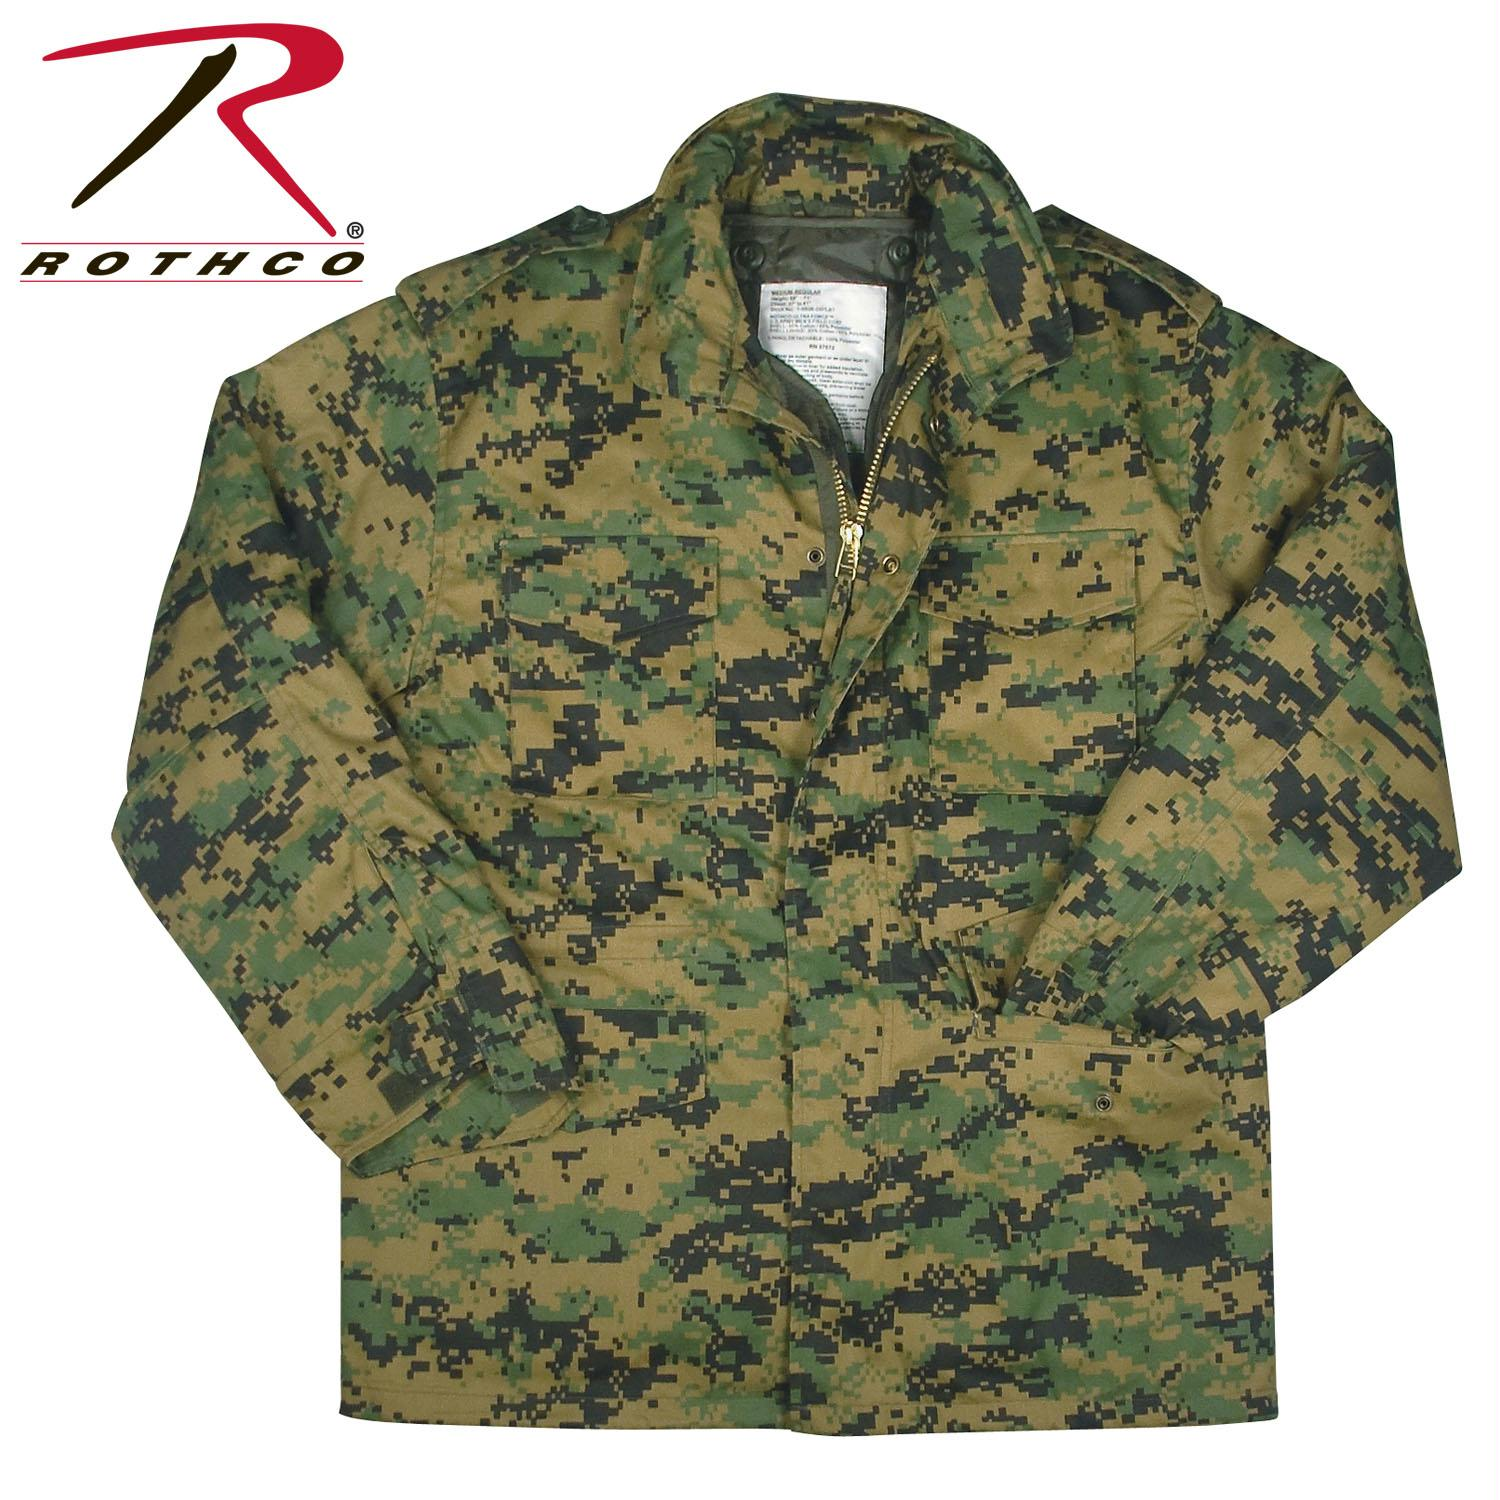 Rothco M-65 Camo Field Jacket - Woodland Digital Camo / L